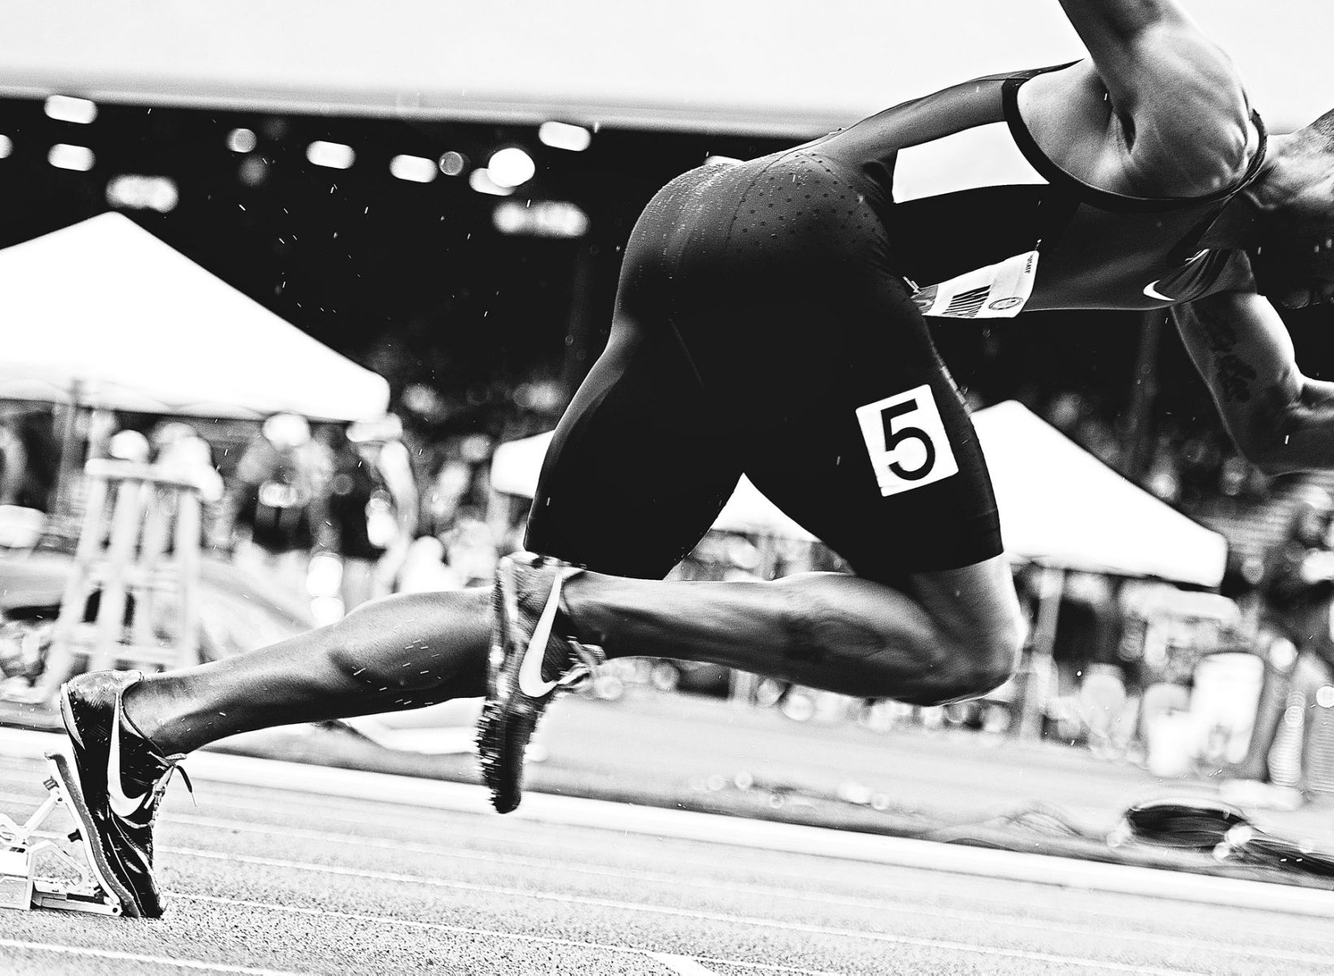 1ustrials2012_number5_track_and_field_image_jeff_cohen_photo_lb.jpg